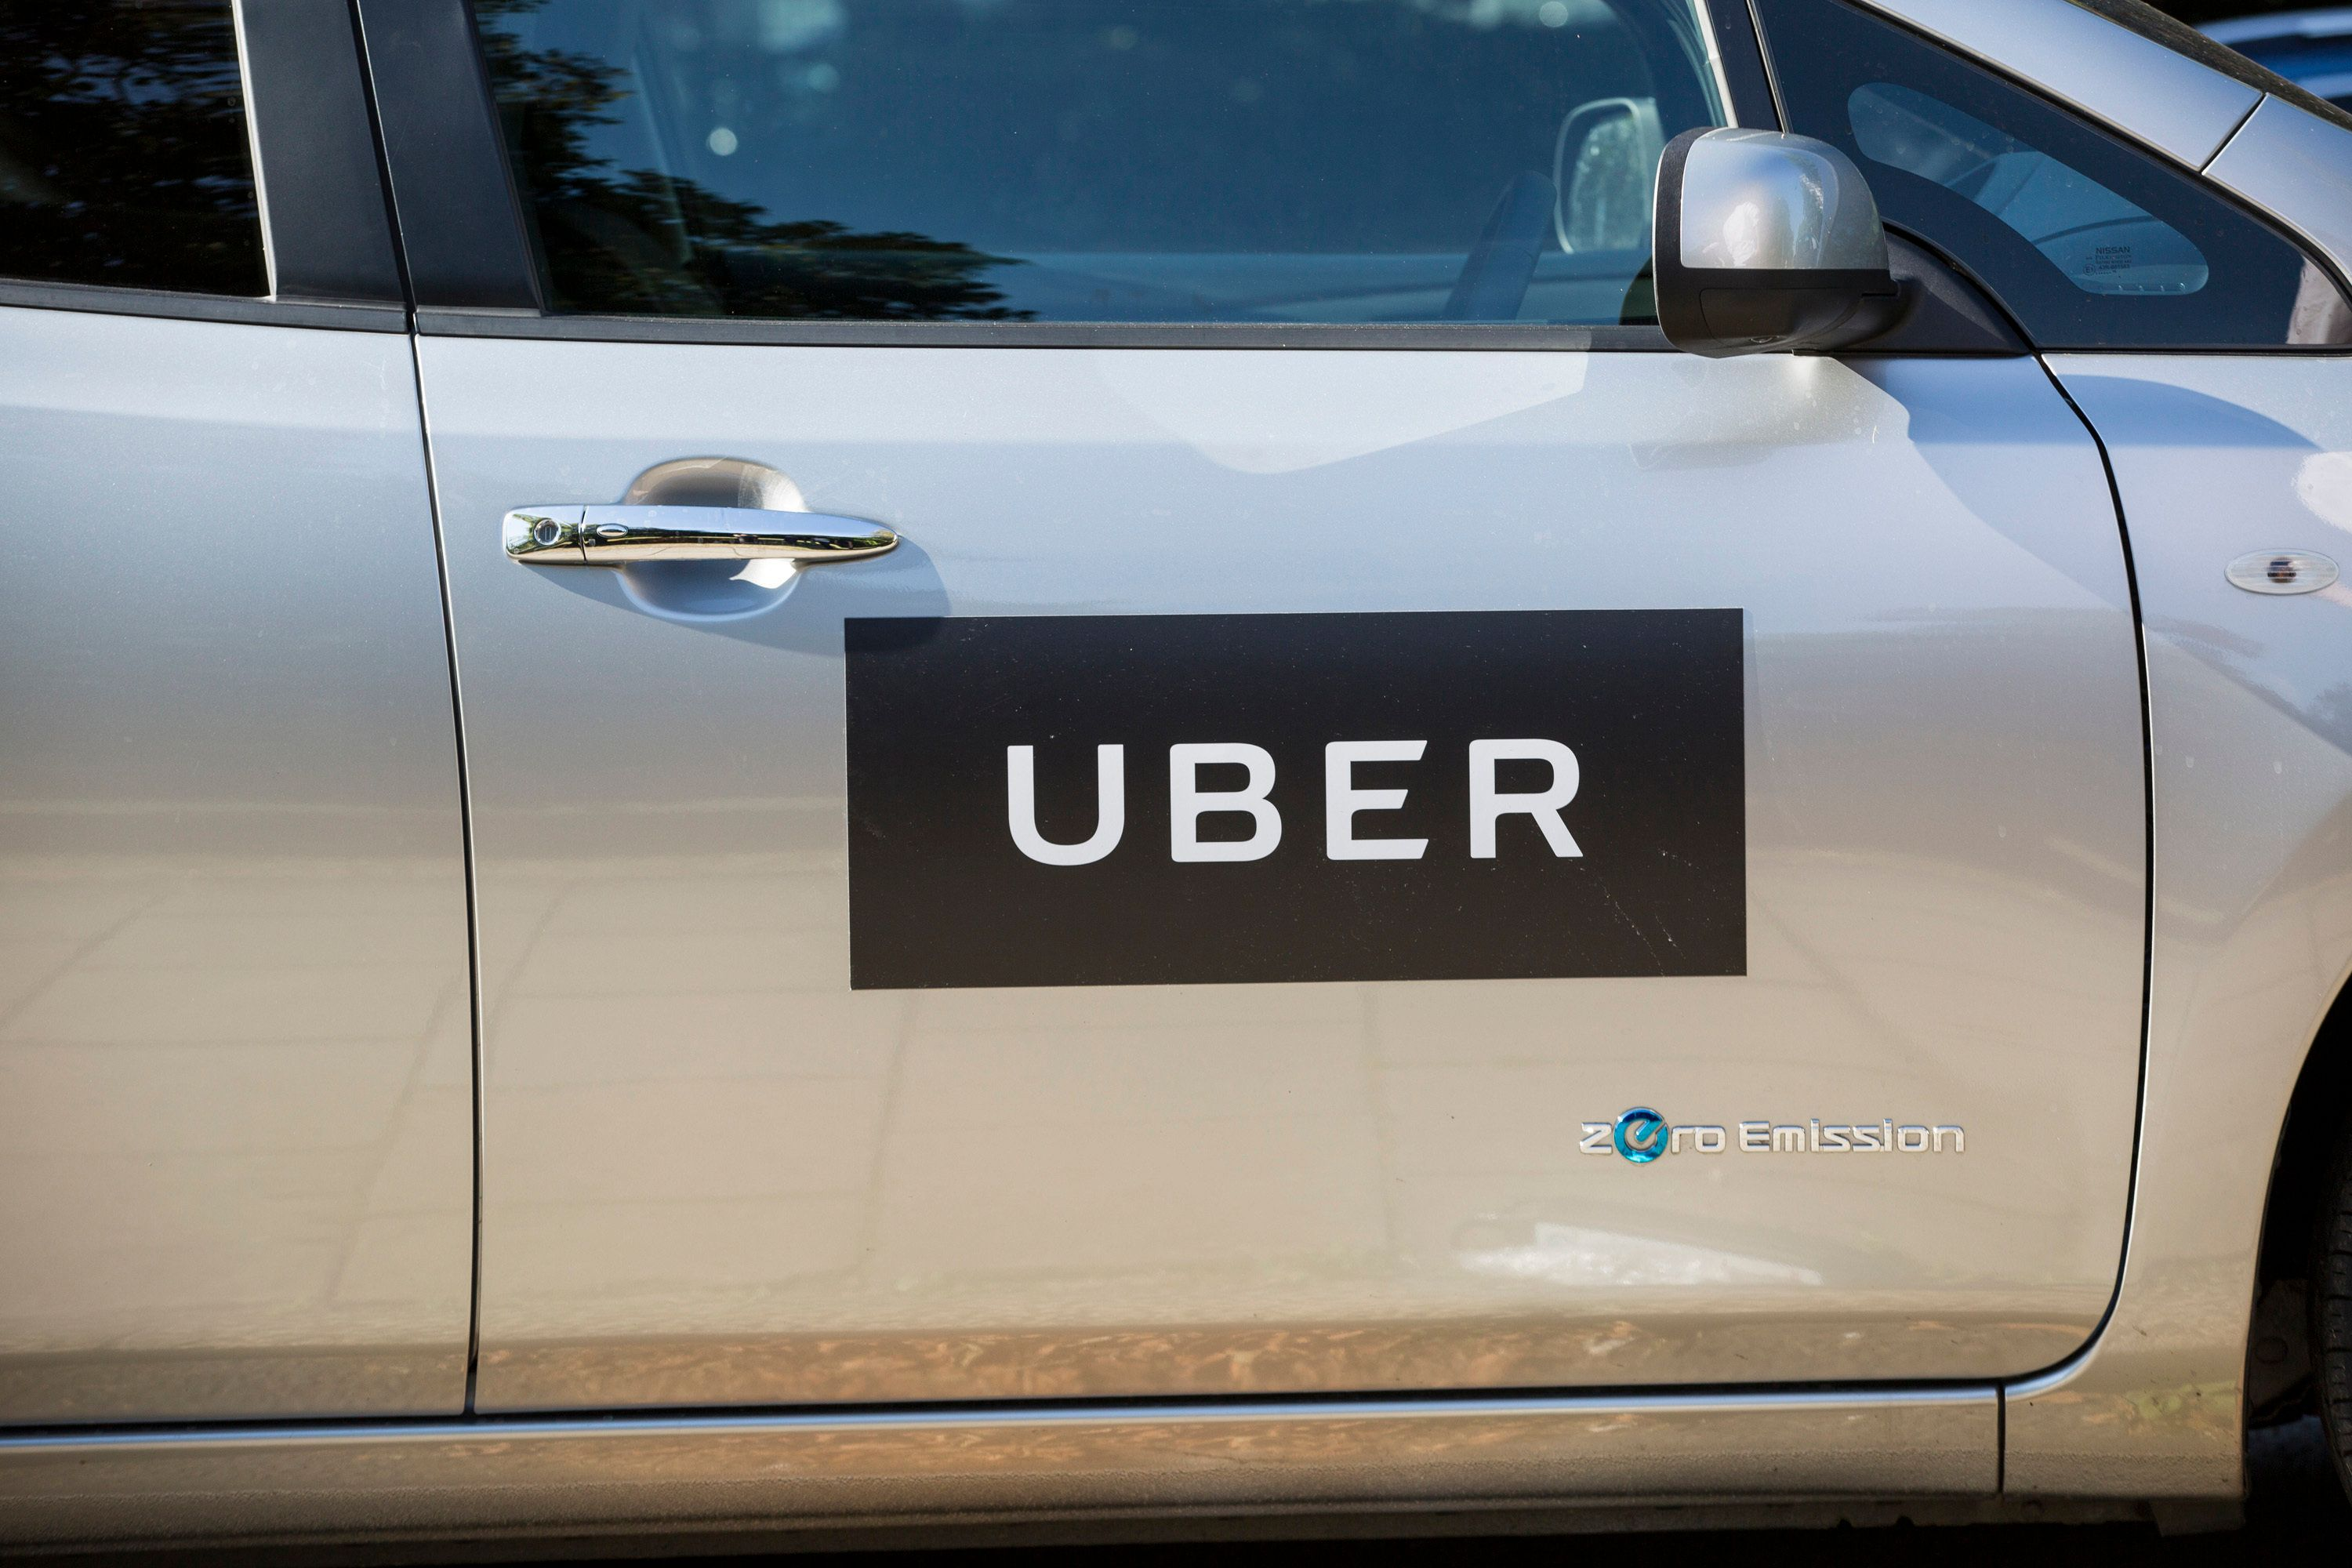 Uber UK: Reclassifying Drivers Would Cost 'Tens Of Millions'